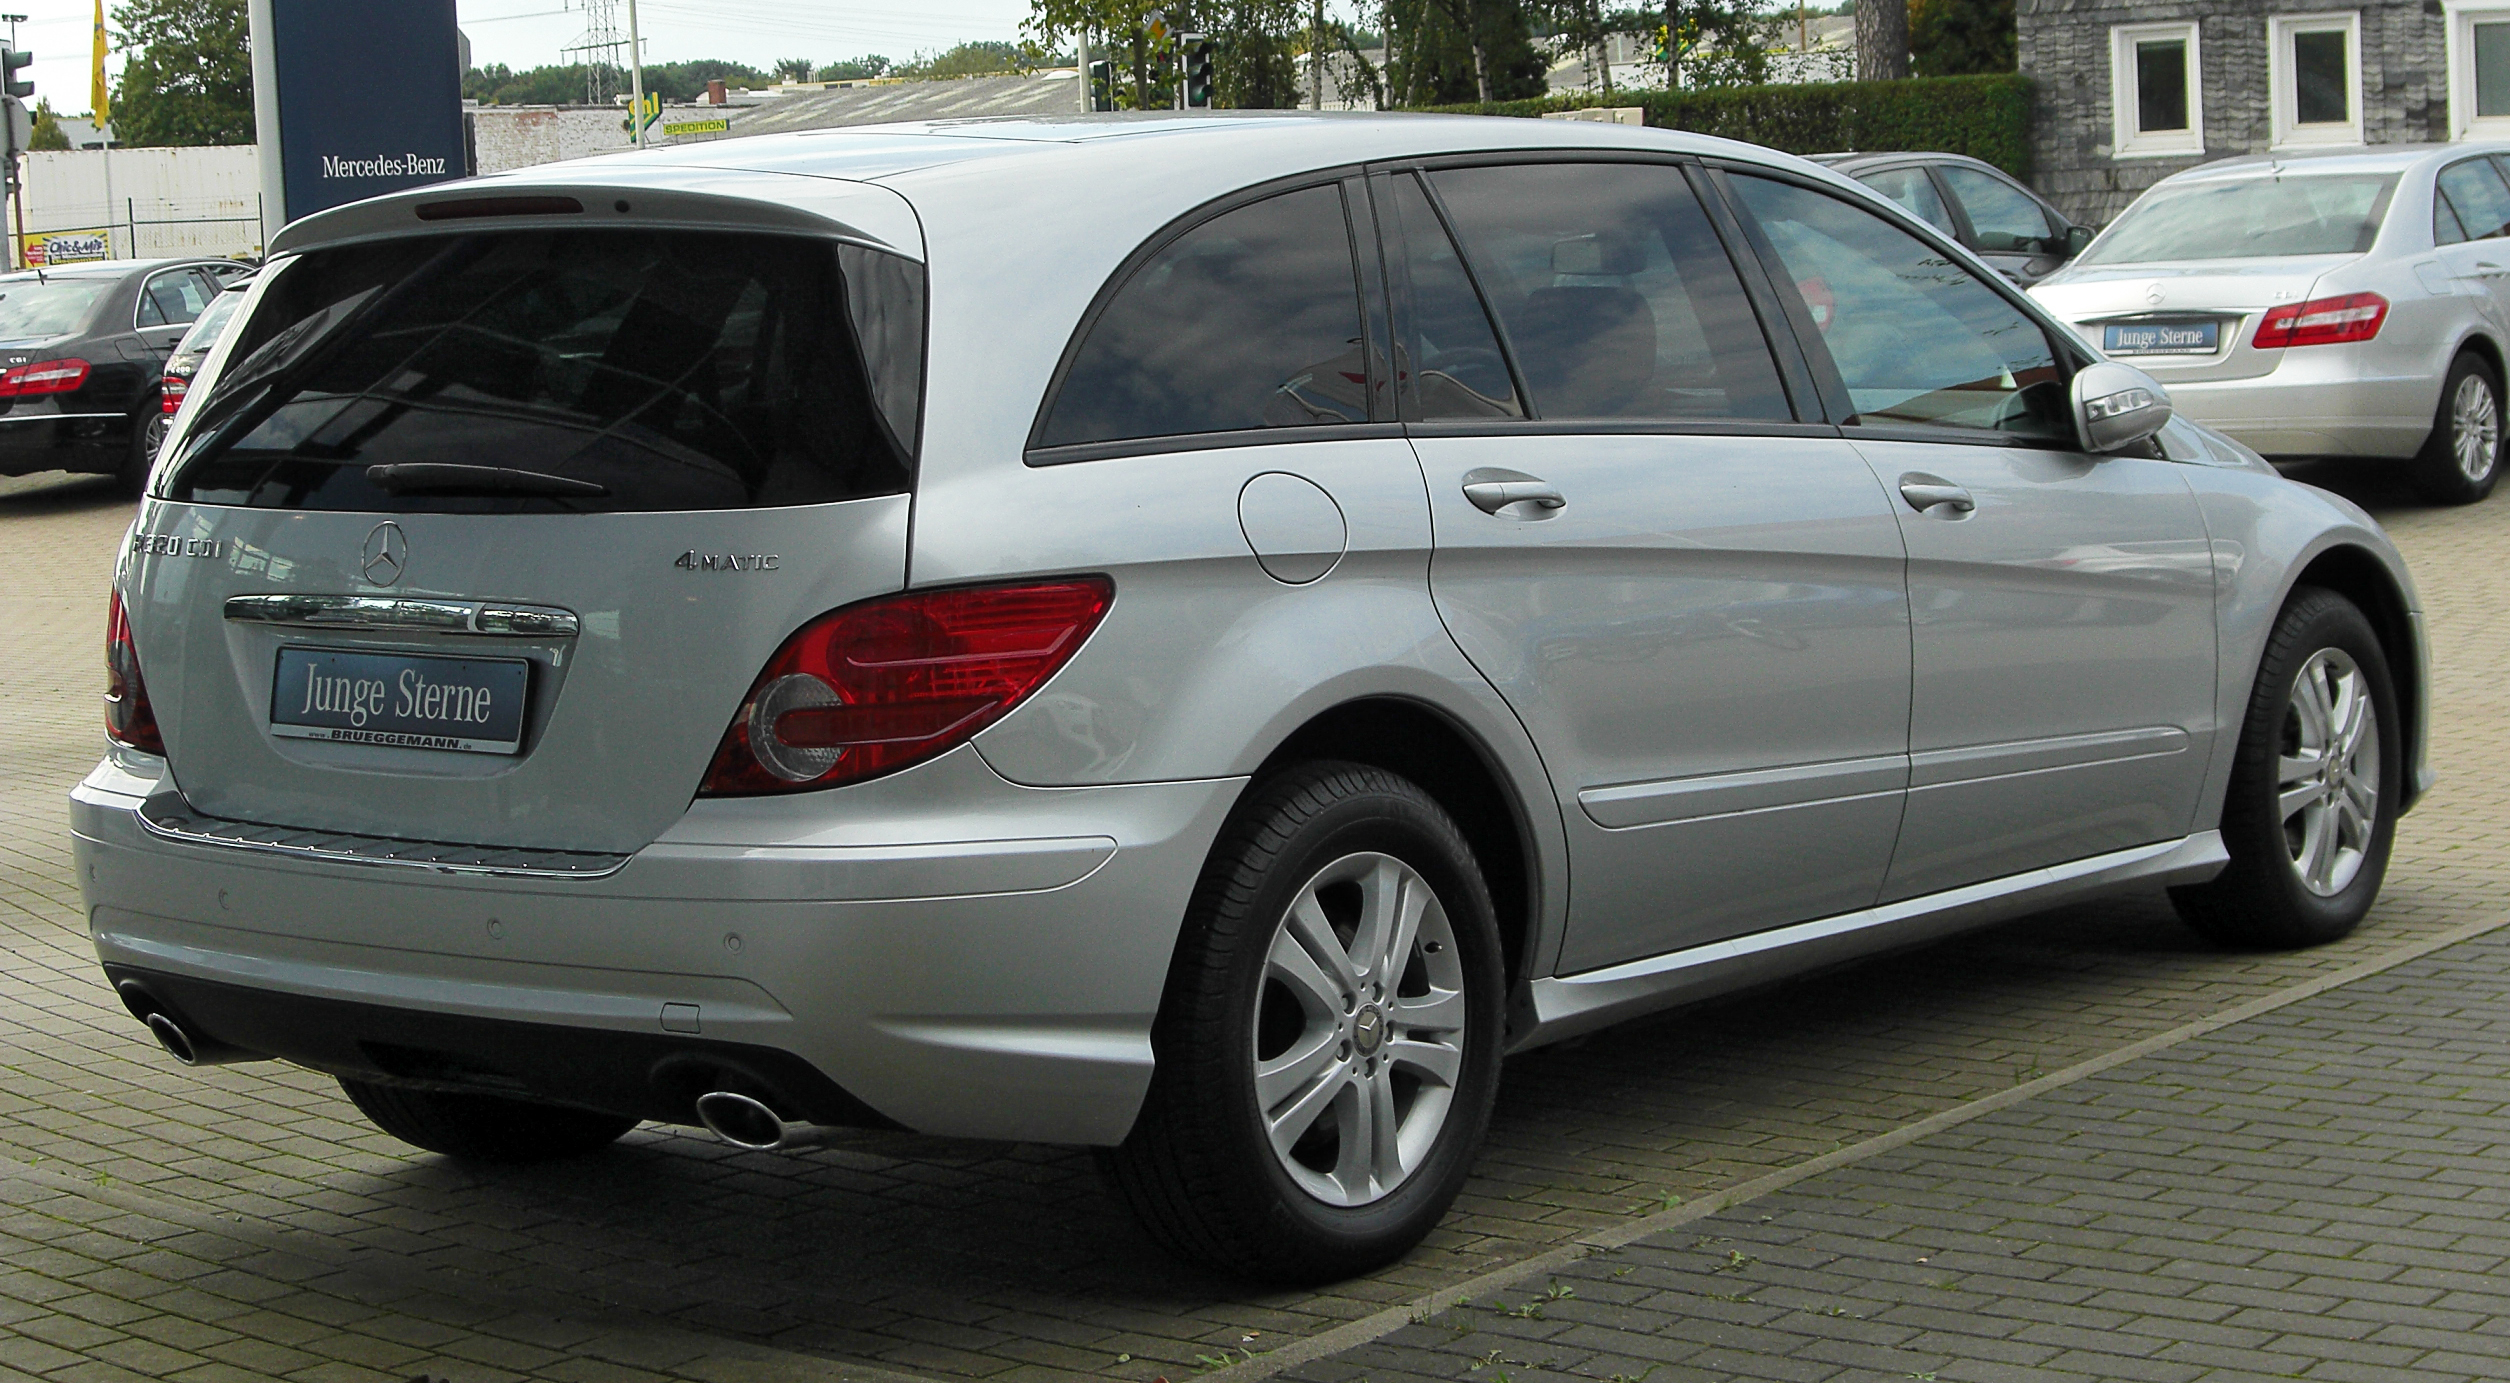 File Mercedes R 320 CDI 4MATIC L  V251  I  Facelift rear 20100918 in addition 7 besides Mercedes Benz E500 besides 2006 Mercedes Benz E Class Paris To Beijing 5 Lanzhou To Beijing From Wuhai To Hohhot Mongolian Steppe And Desert Landscapes 7 1280x960 moreover 470264 2003 Ml350 Parking Brake Adjustment. on mercedes benz m class